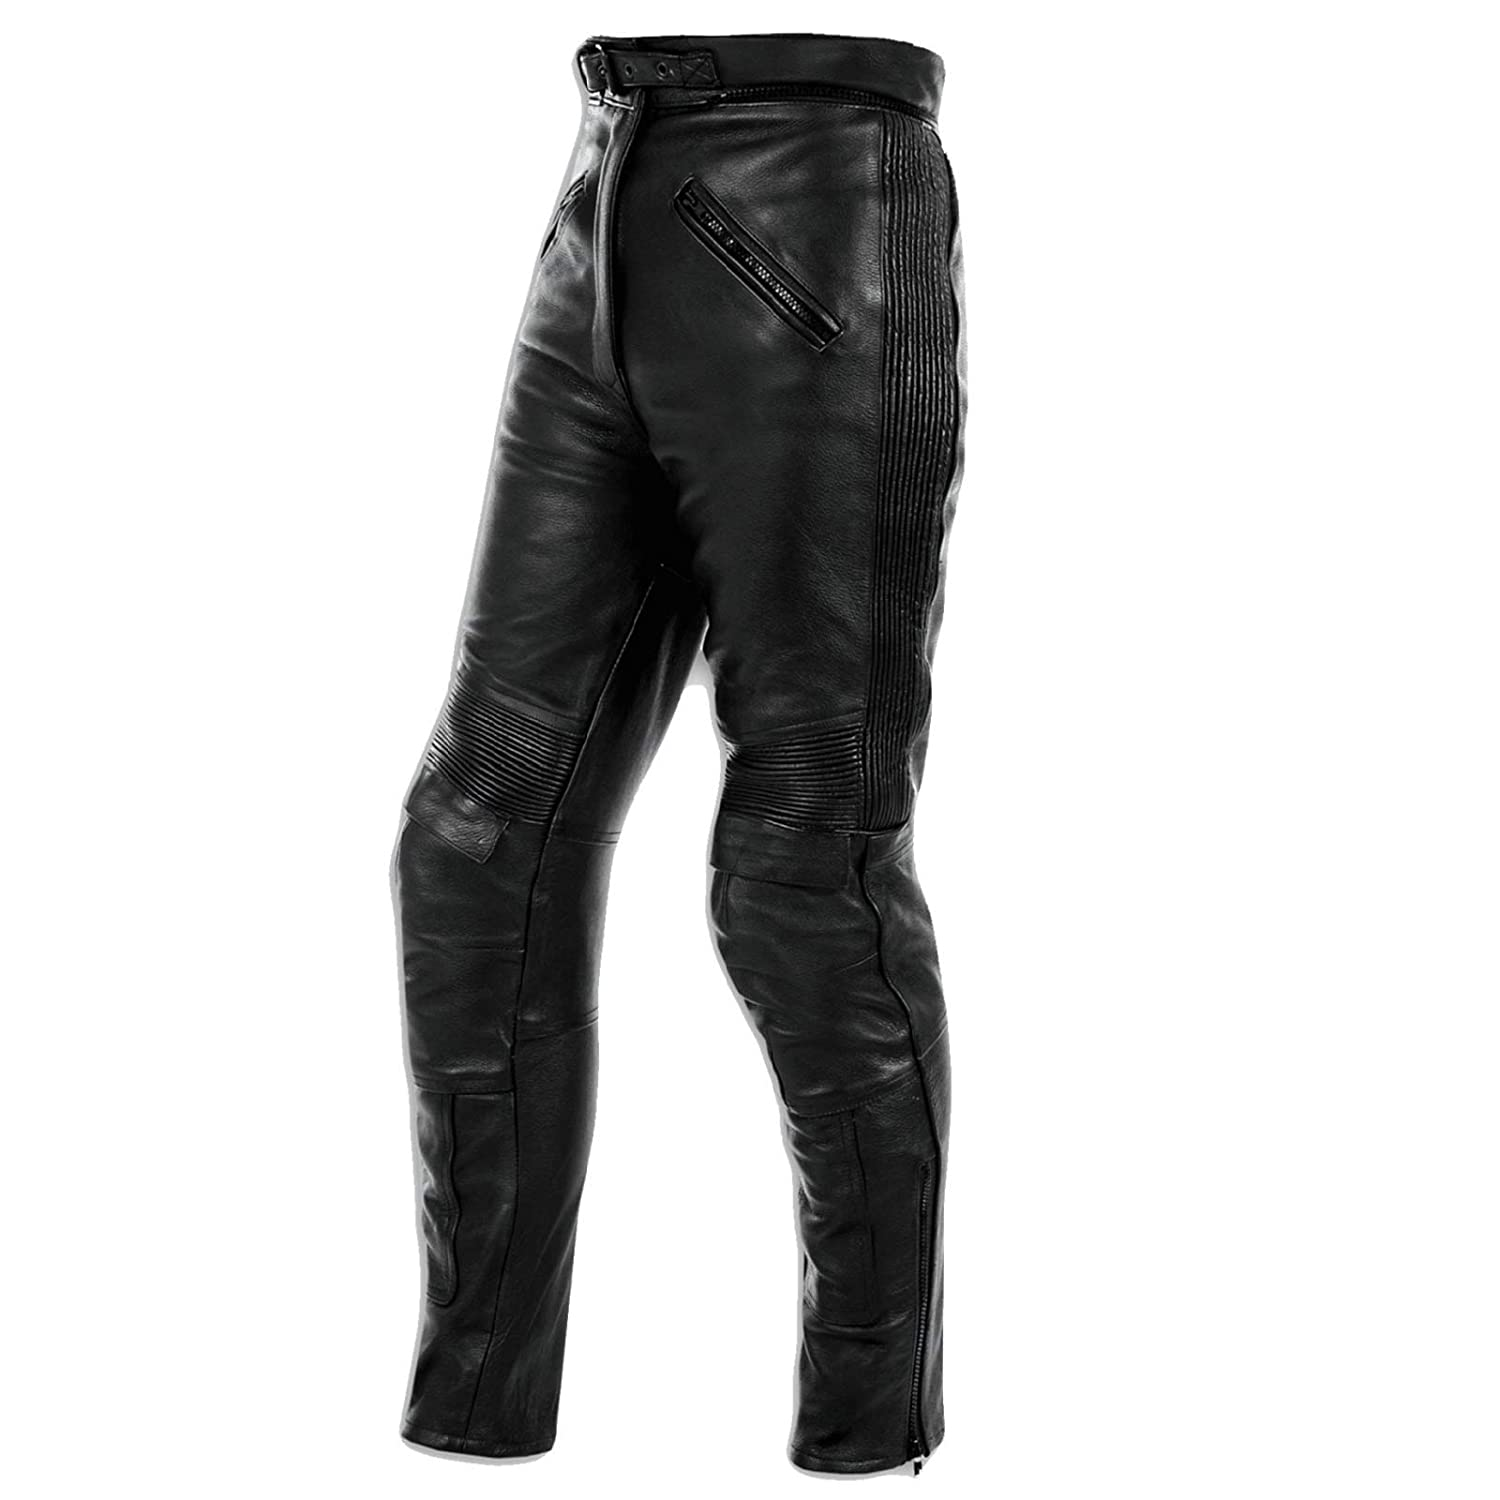 A de Pro Moteur Bike Elastic Leather Trousers Ladies Moto Bike Moto 26